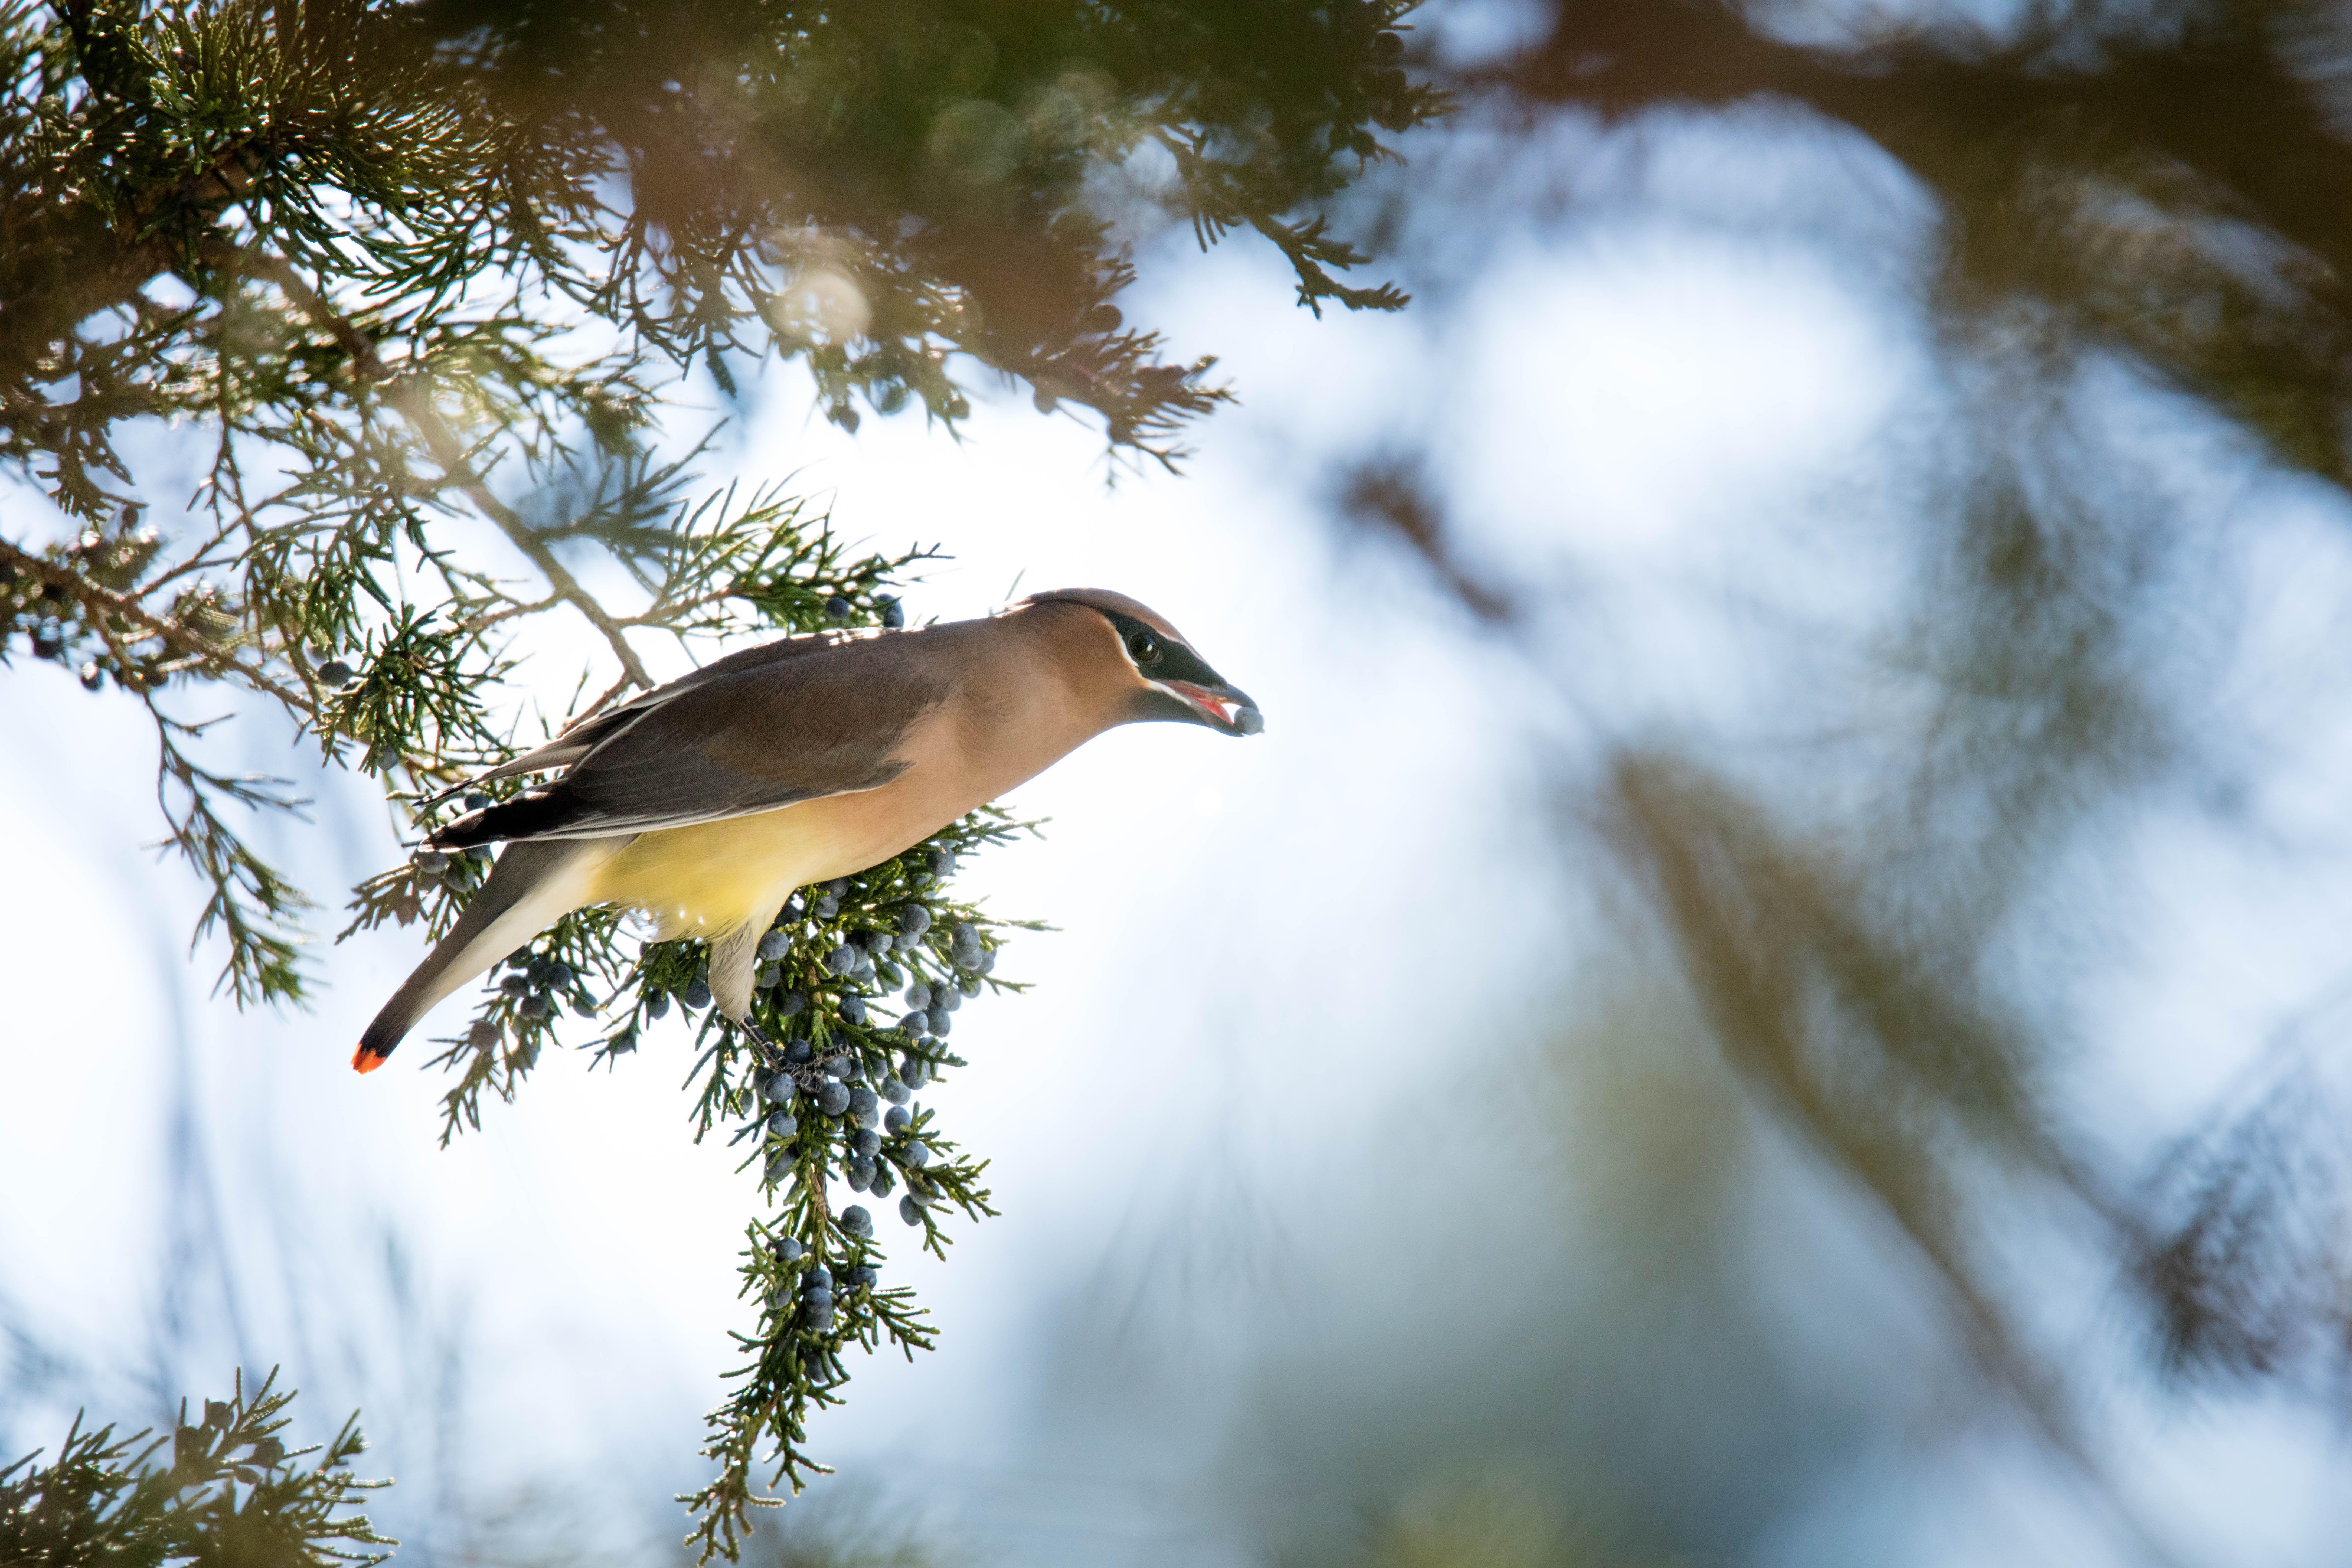 A cedar waxwing perched in a cedar tree. Photo Courtesy Shenandoah NPS.